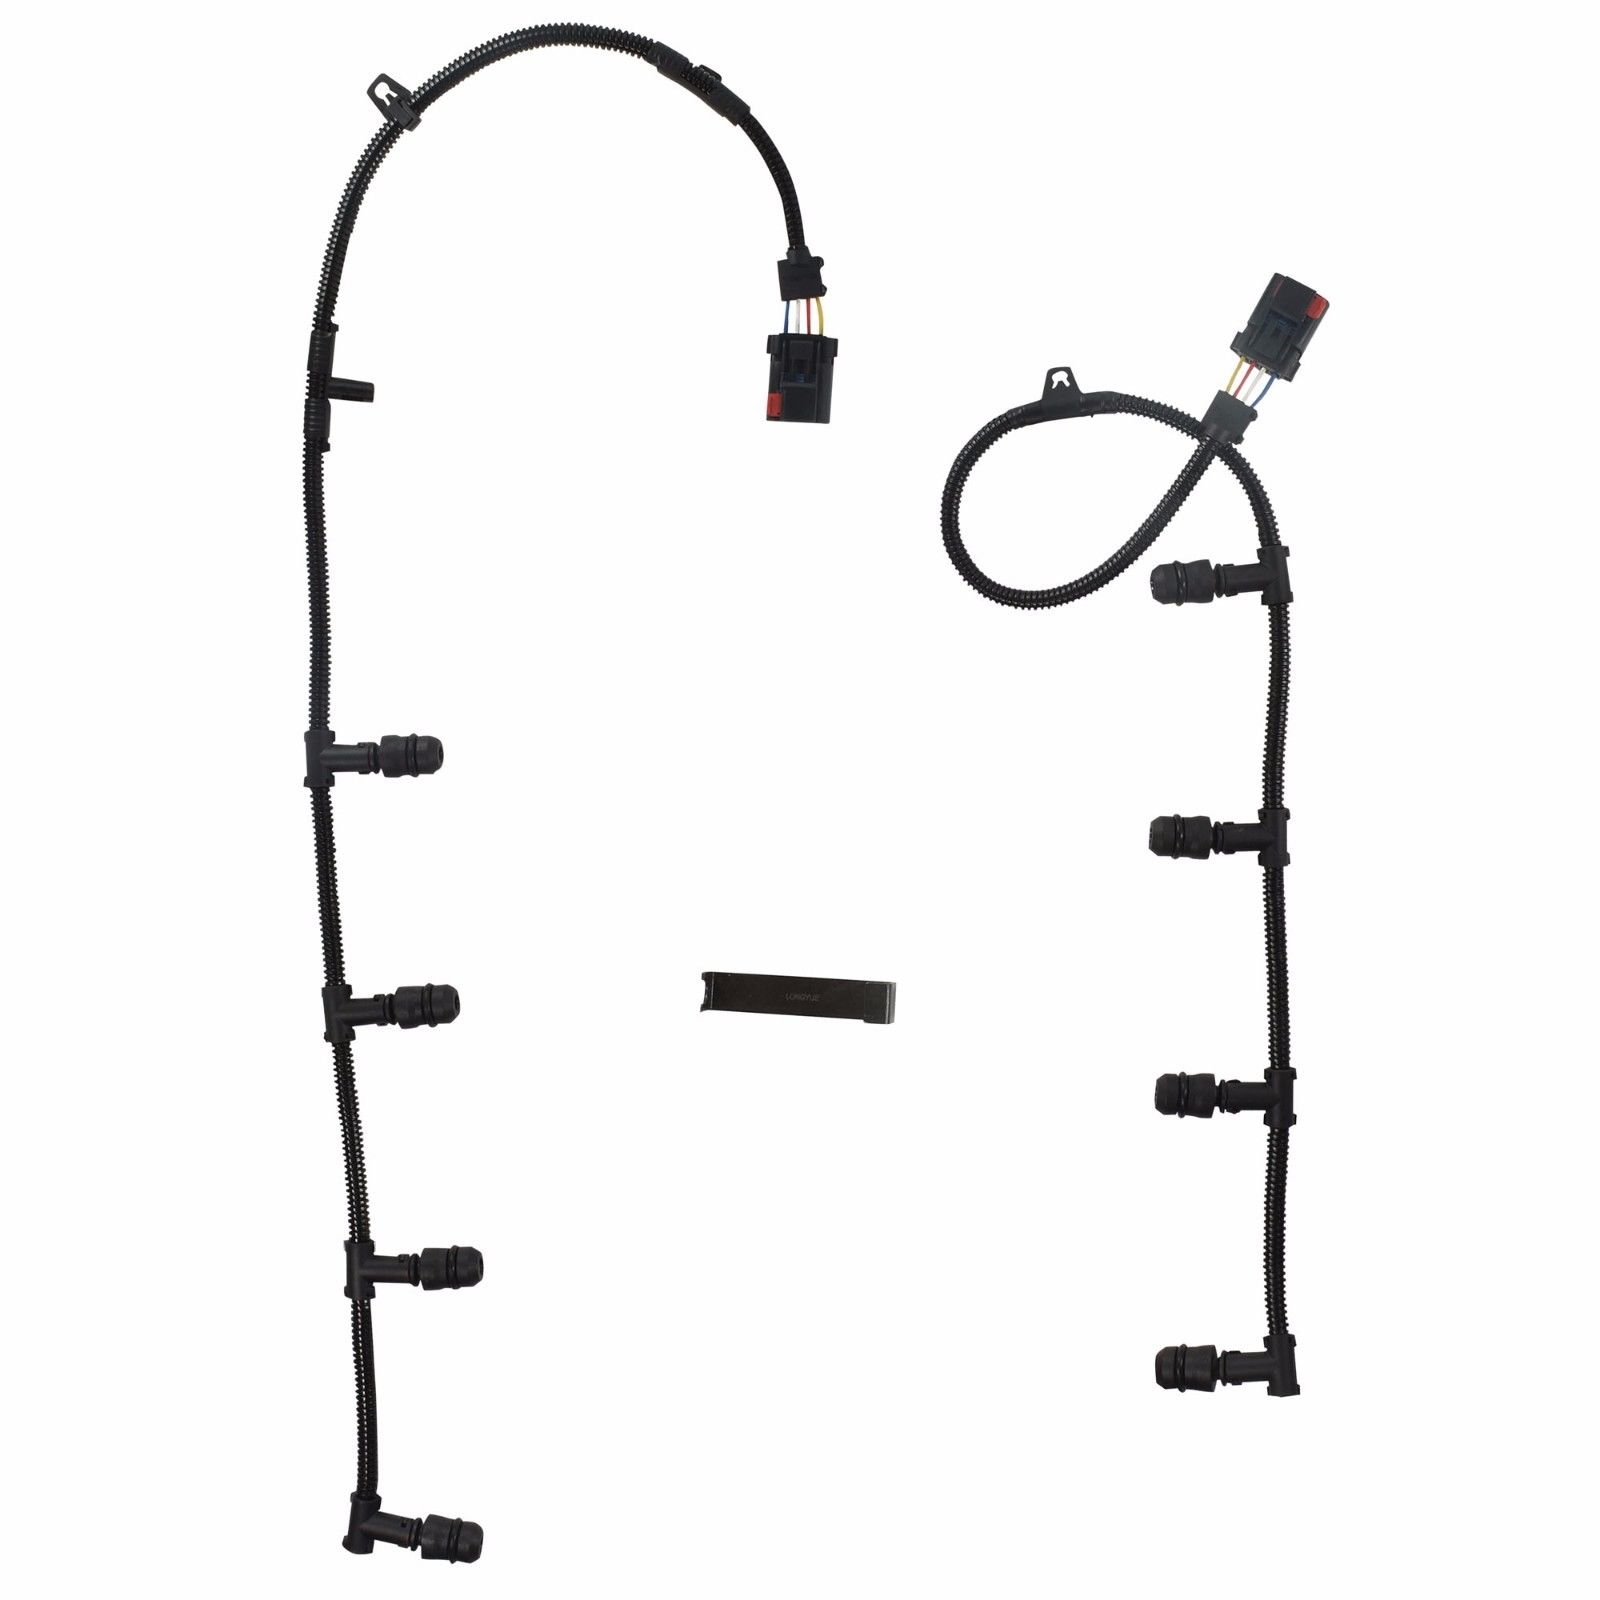 Glow Plug Harness Set for 6.0L 04.5-10 Powerstroke